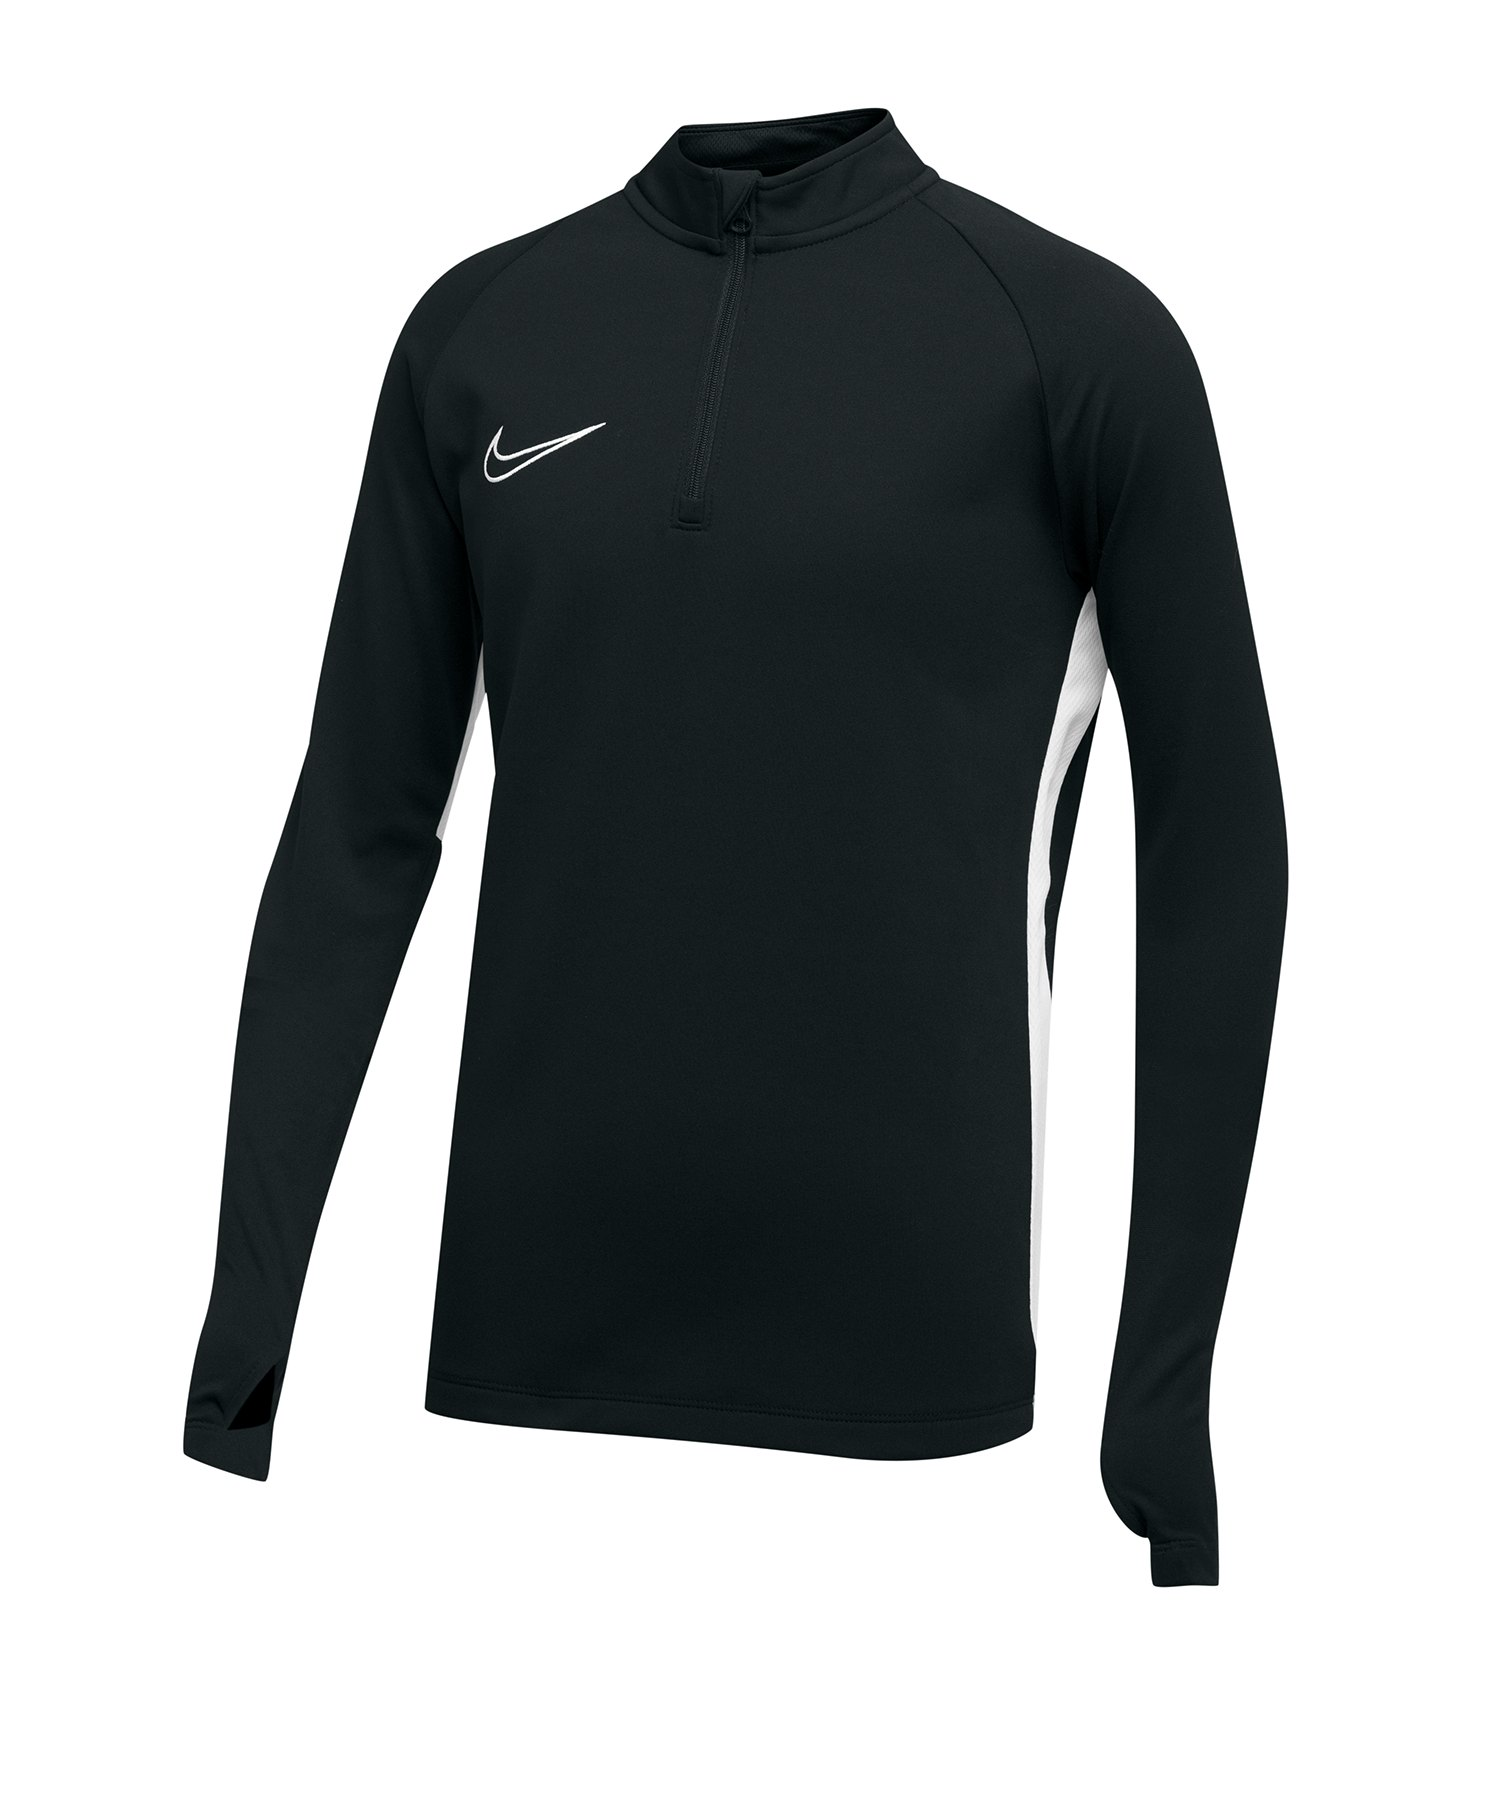 Nike Academy 19 1/4 Zip Drill Top Kids F010 - Schwarz